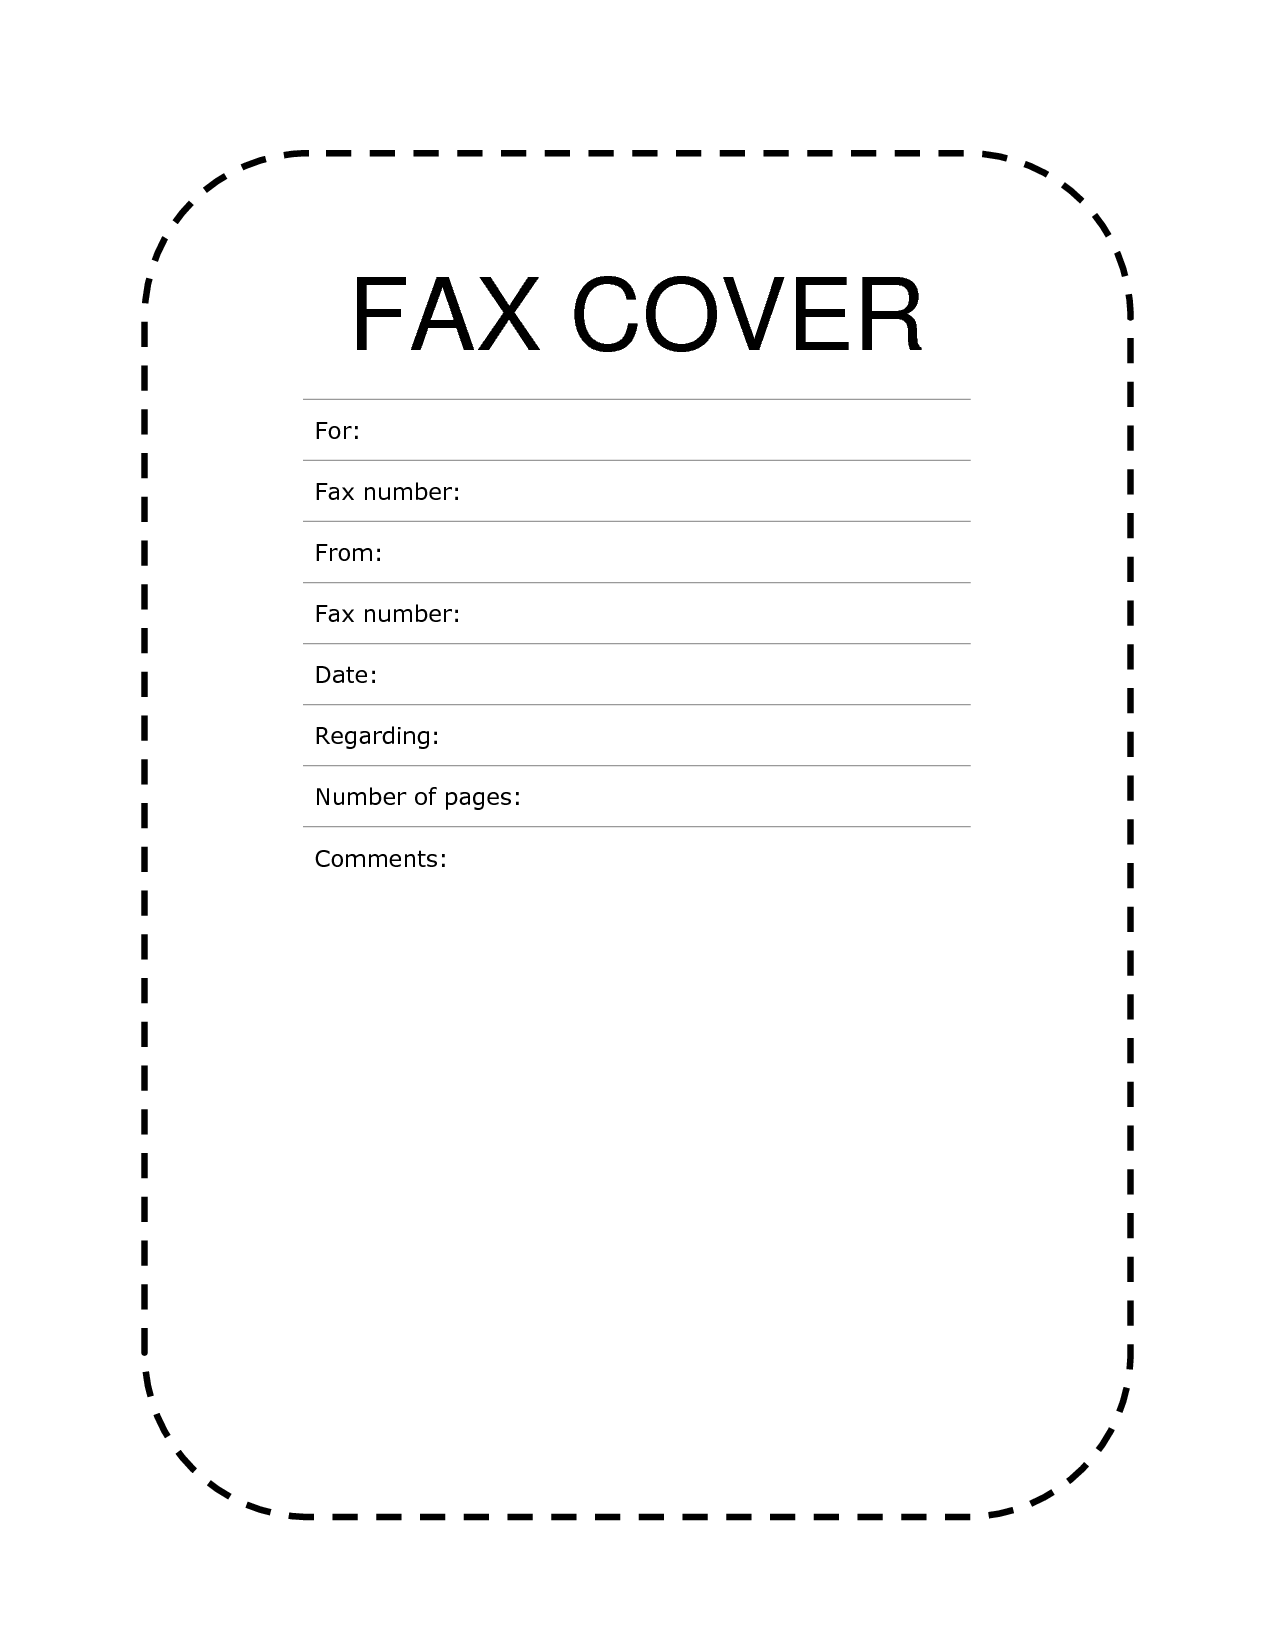 Fax Cover Sheet Word DOC Printable Sourcetemplate